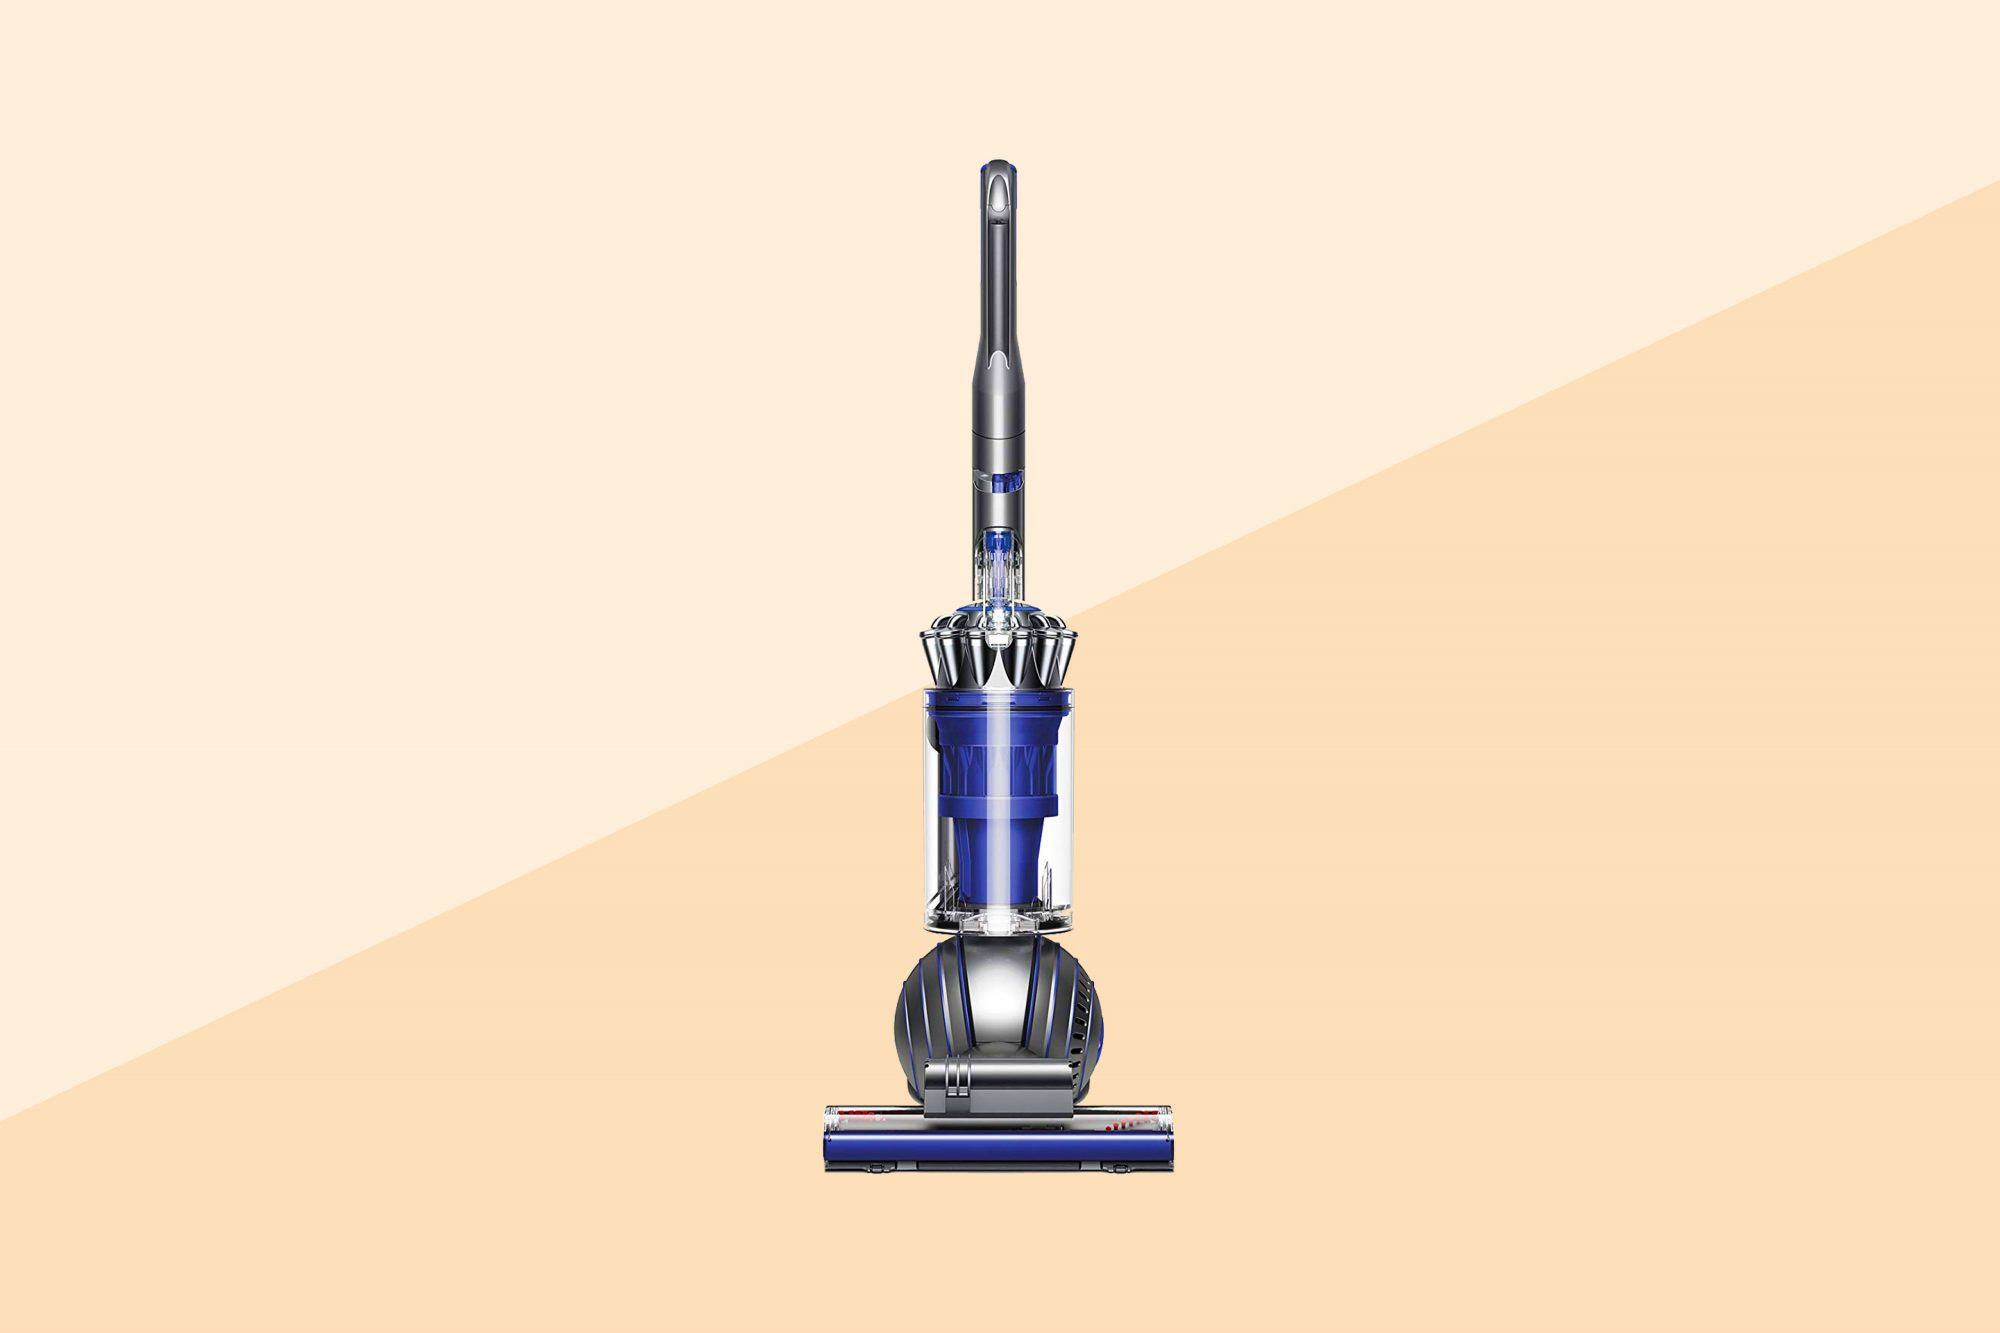 Prime Day May be Weeks Away, But These Dyson Vacuums Are Already Up to 47% Off